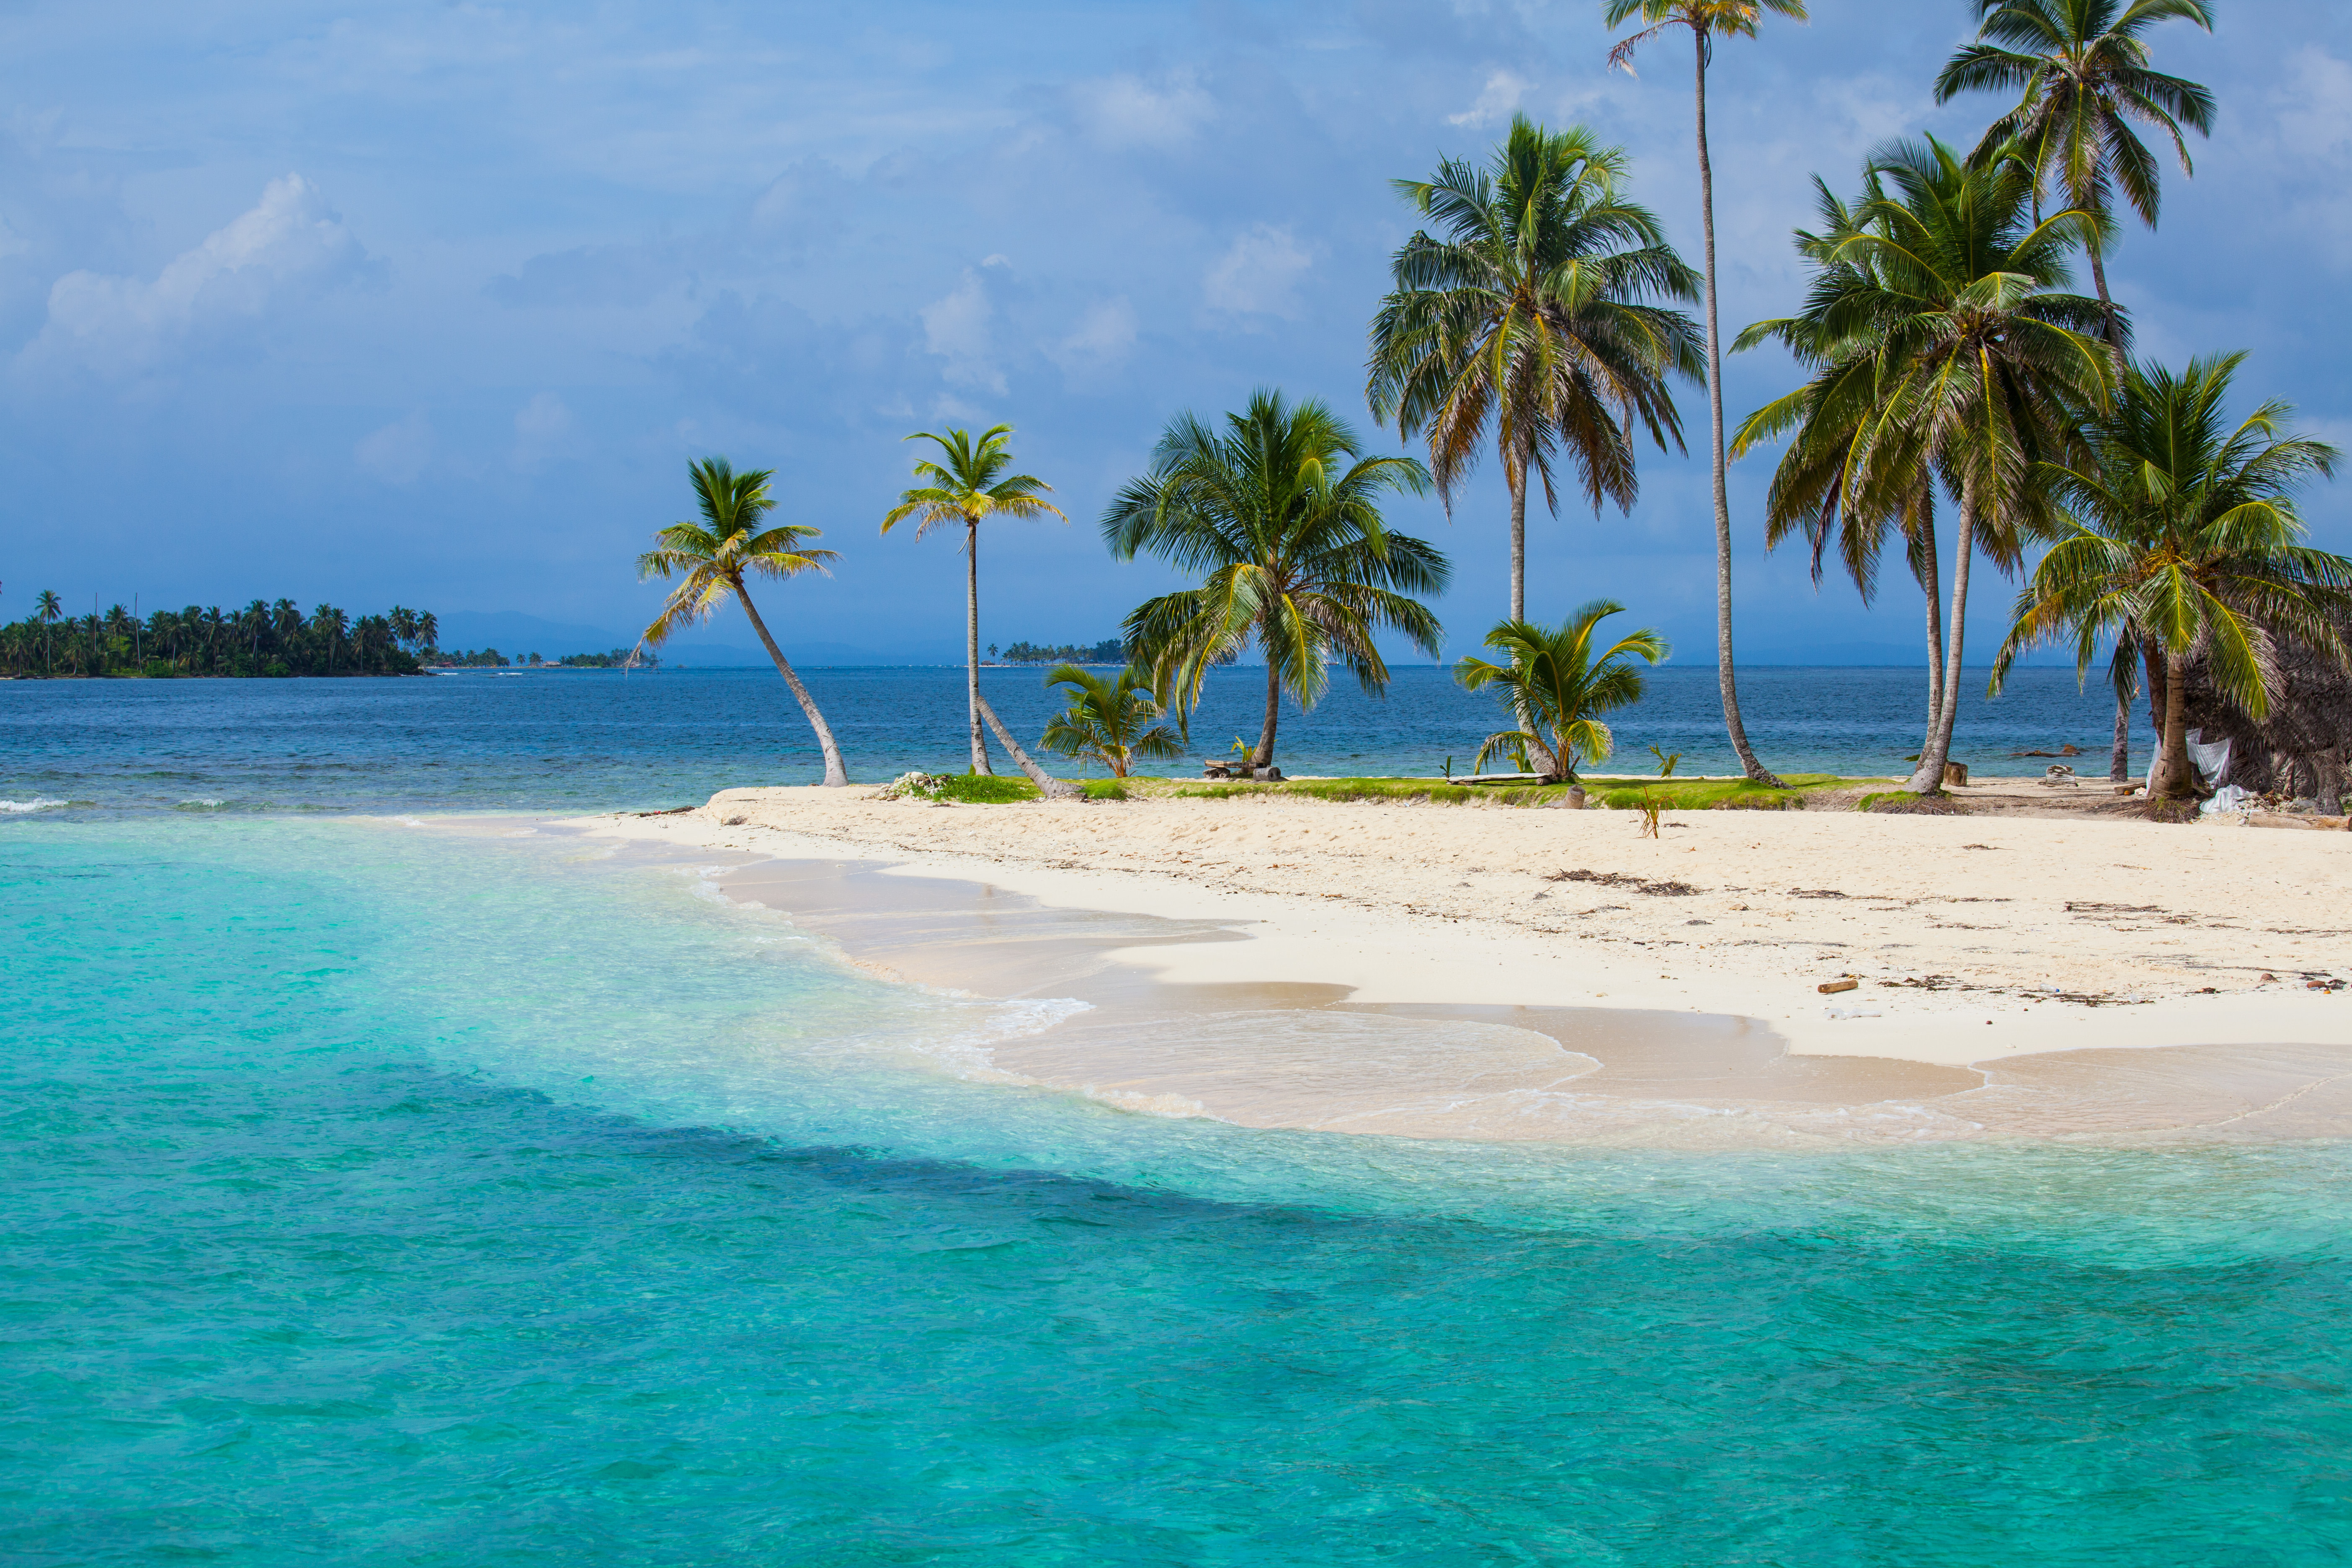 San Blas Islands in Panama